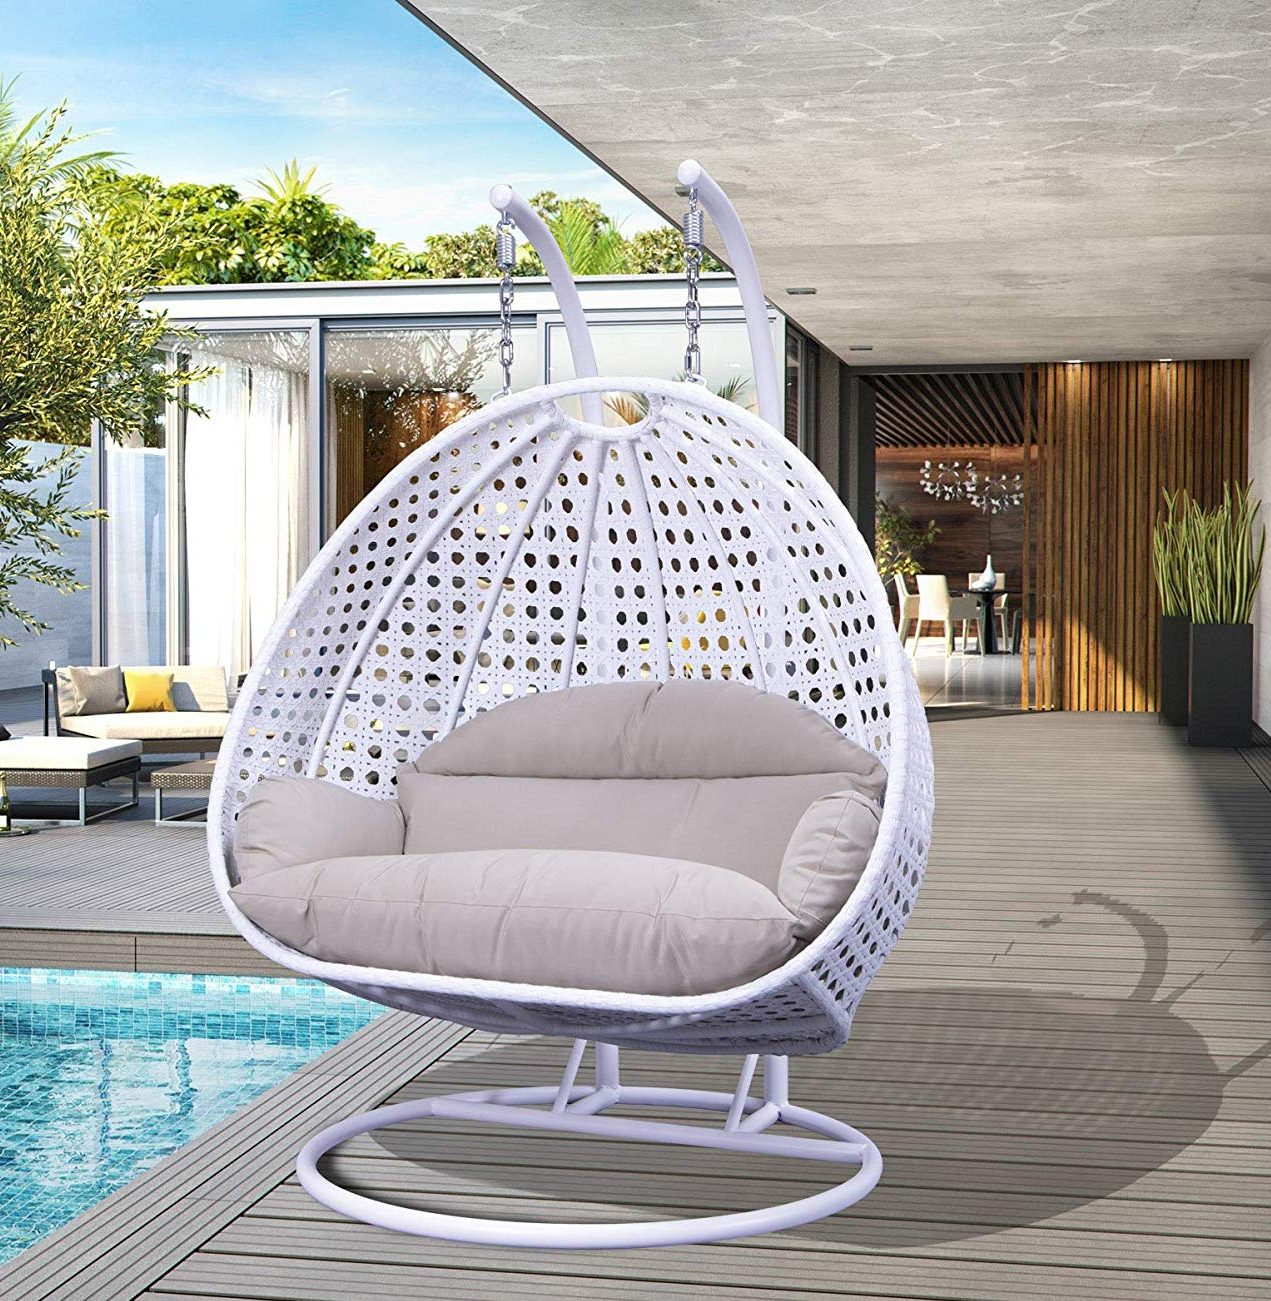 2-person-white-wicker-hanging-chair-hammoc-swing-with-stand-on-the-porch